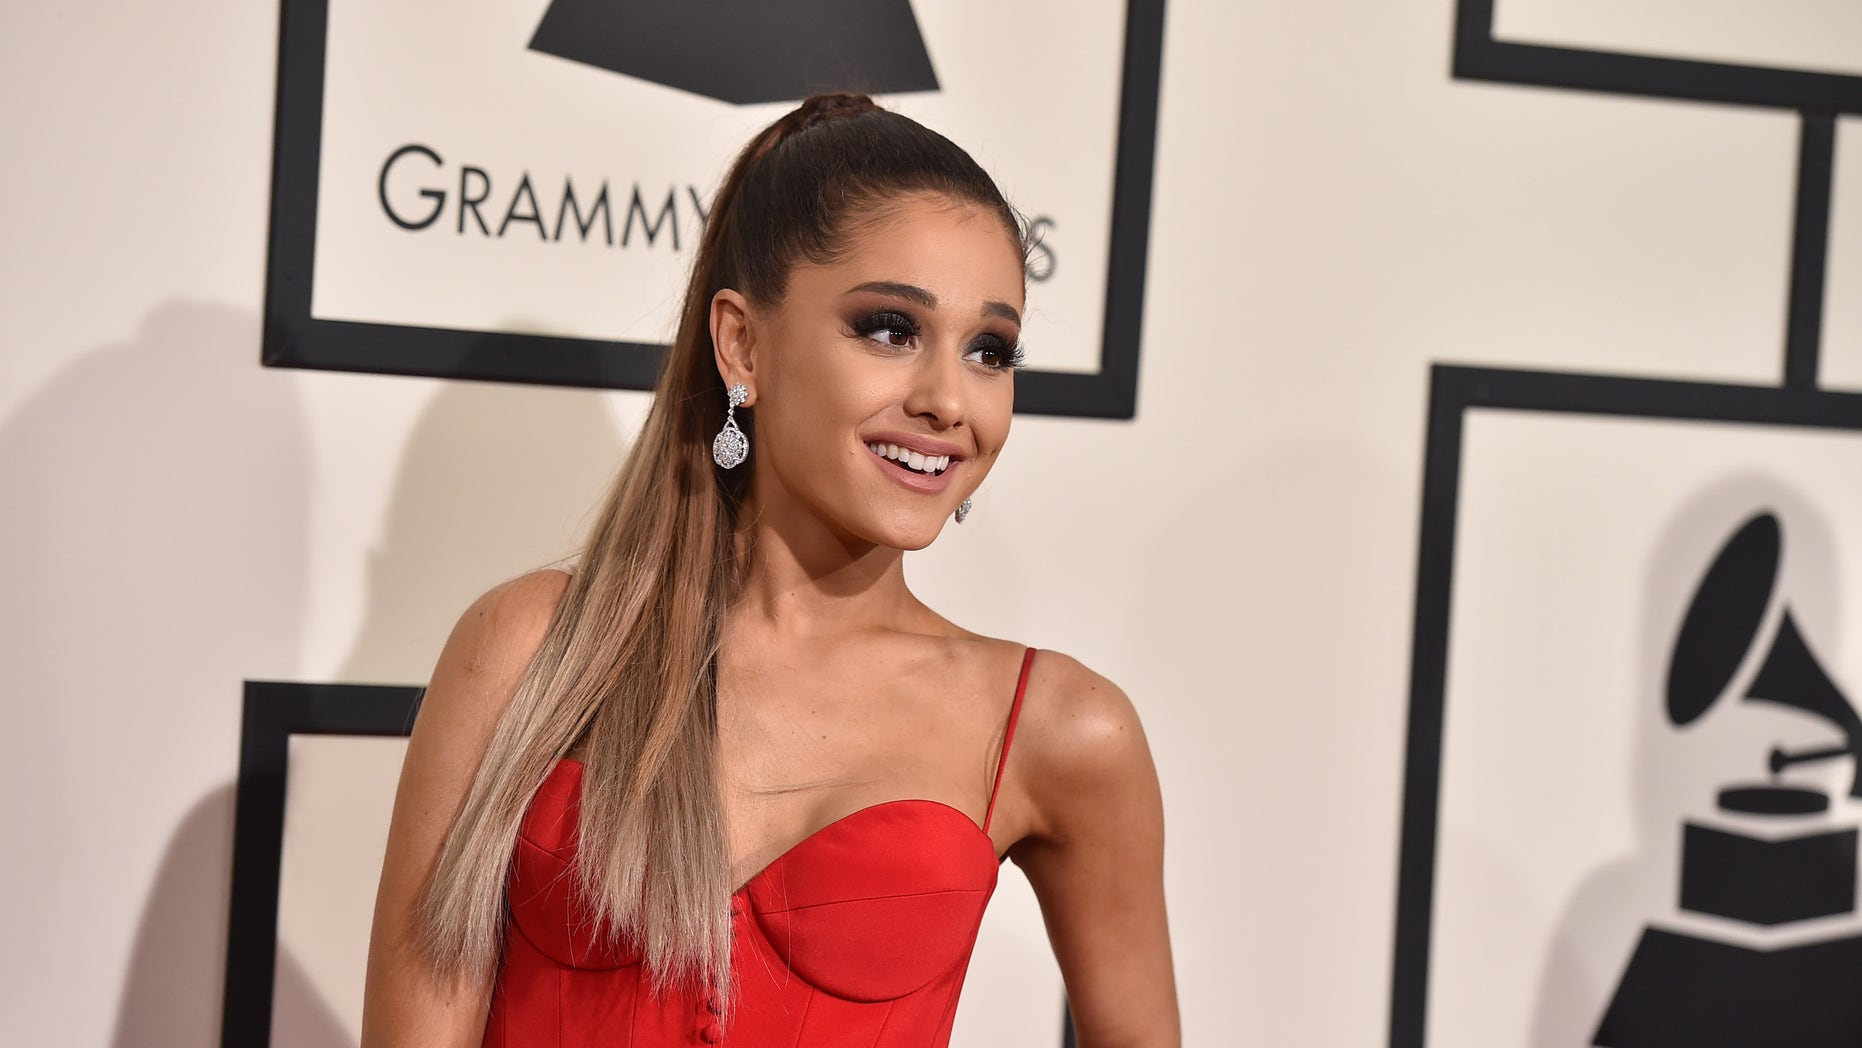 Ariana Grande took to Twitter to reflect on this 'chapter' in her life.